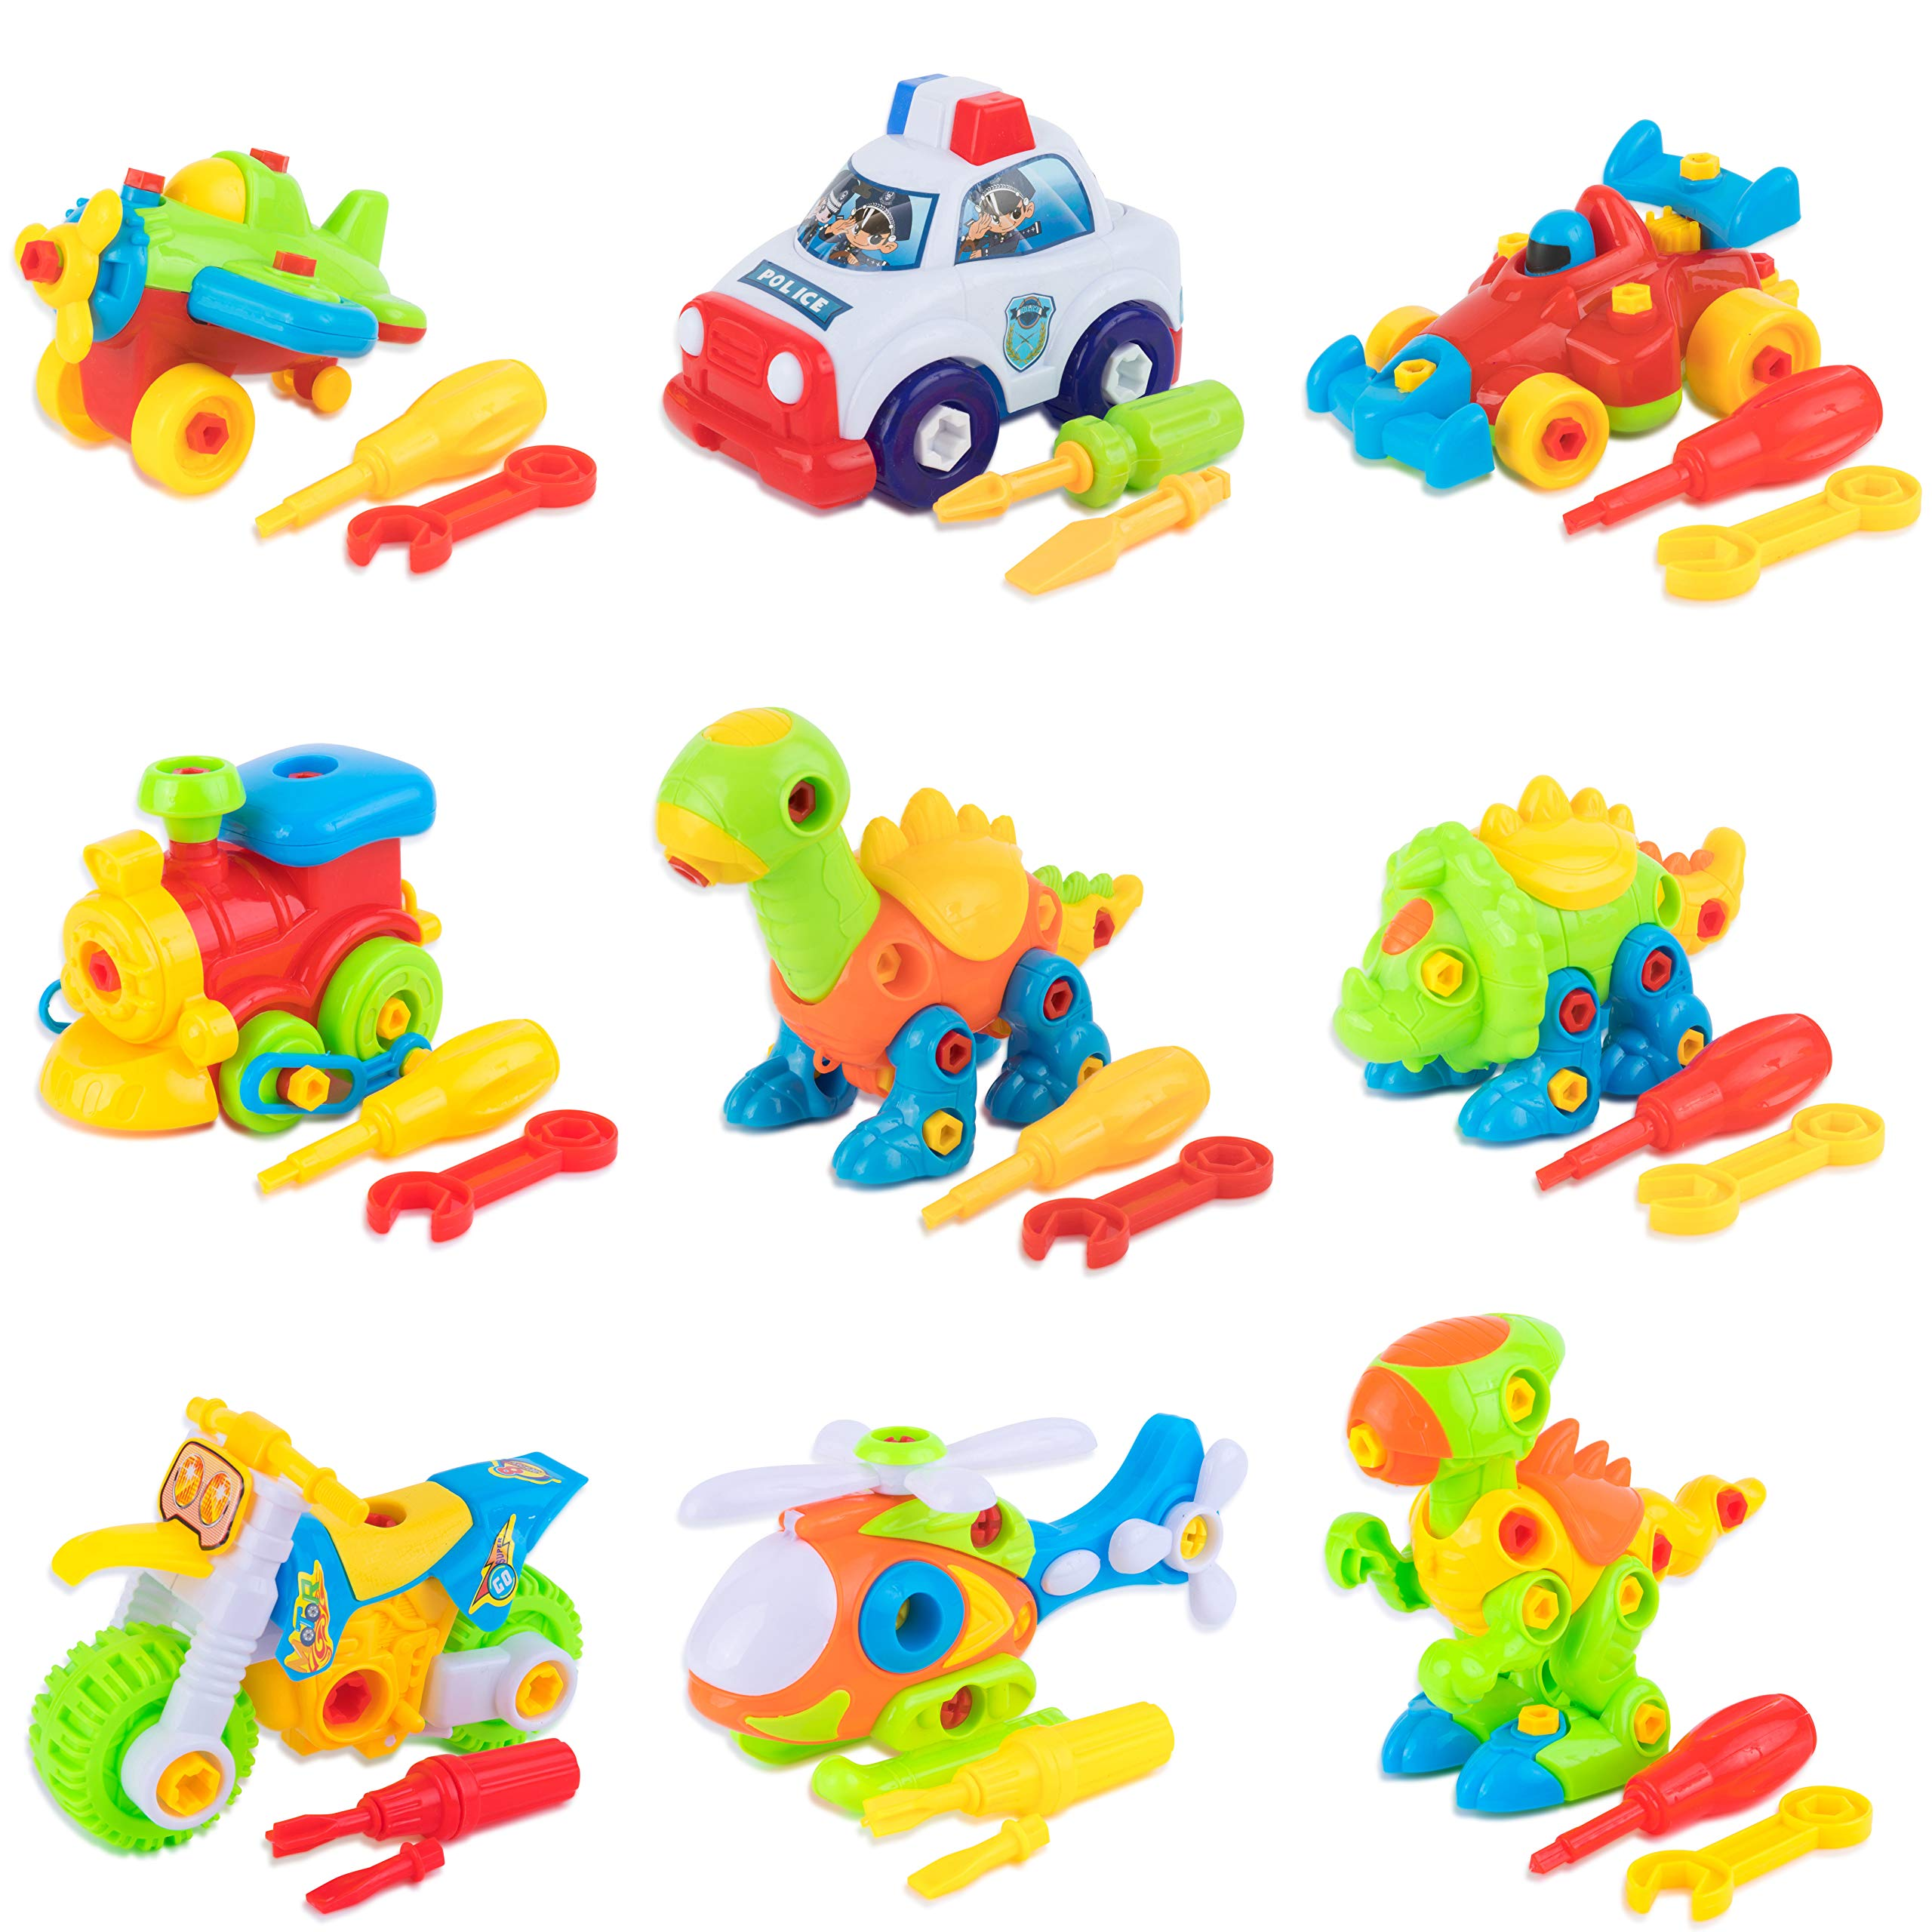 Toy To Enjoy Take-Apart Toys with Tools - Dinosaur & Vehicle Construction Building Play Set - for Child Development & Creativity - Pack of 9